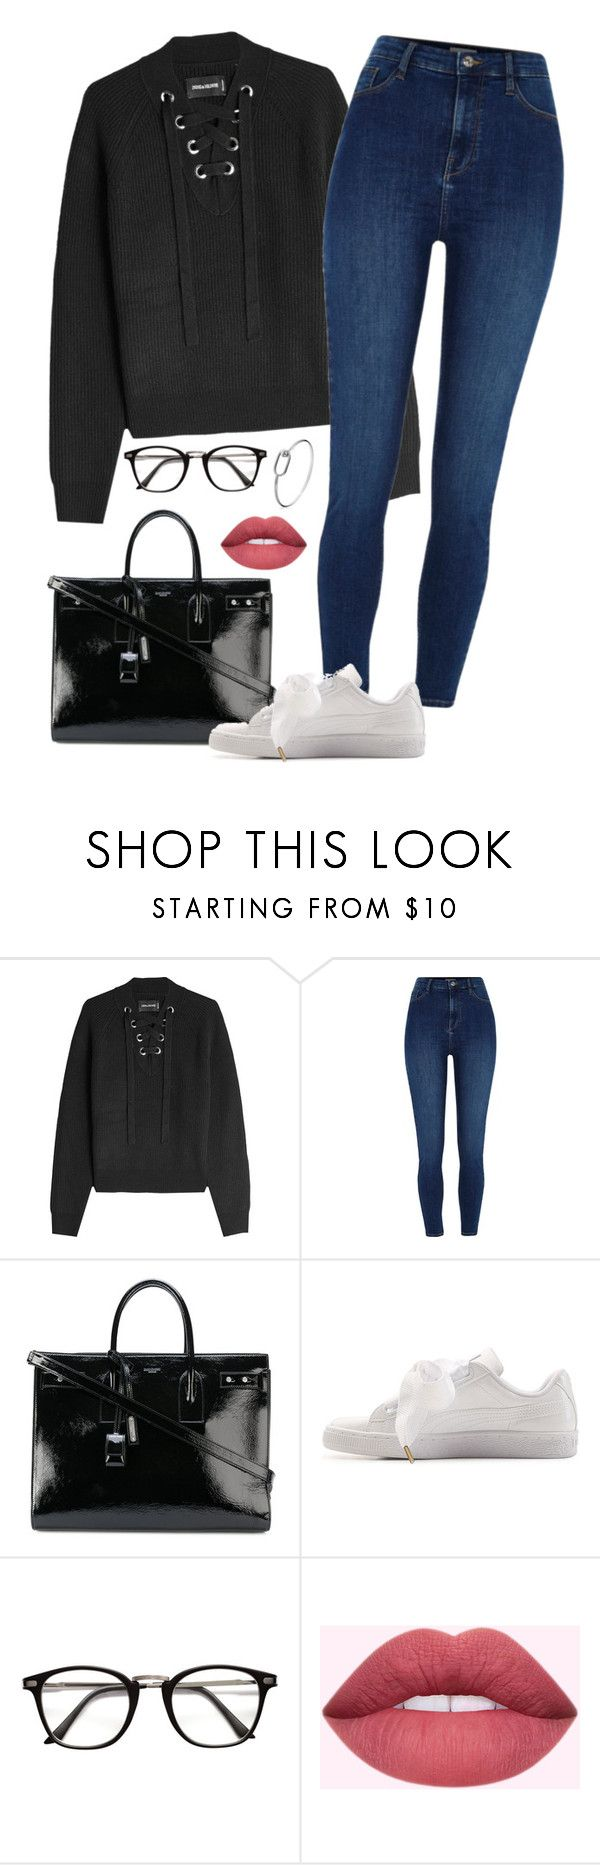 """Simple"" by alwateenalr on Polyvore featuring Zadig & Voltaire, Yves Saint Laurent and Puma"